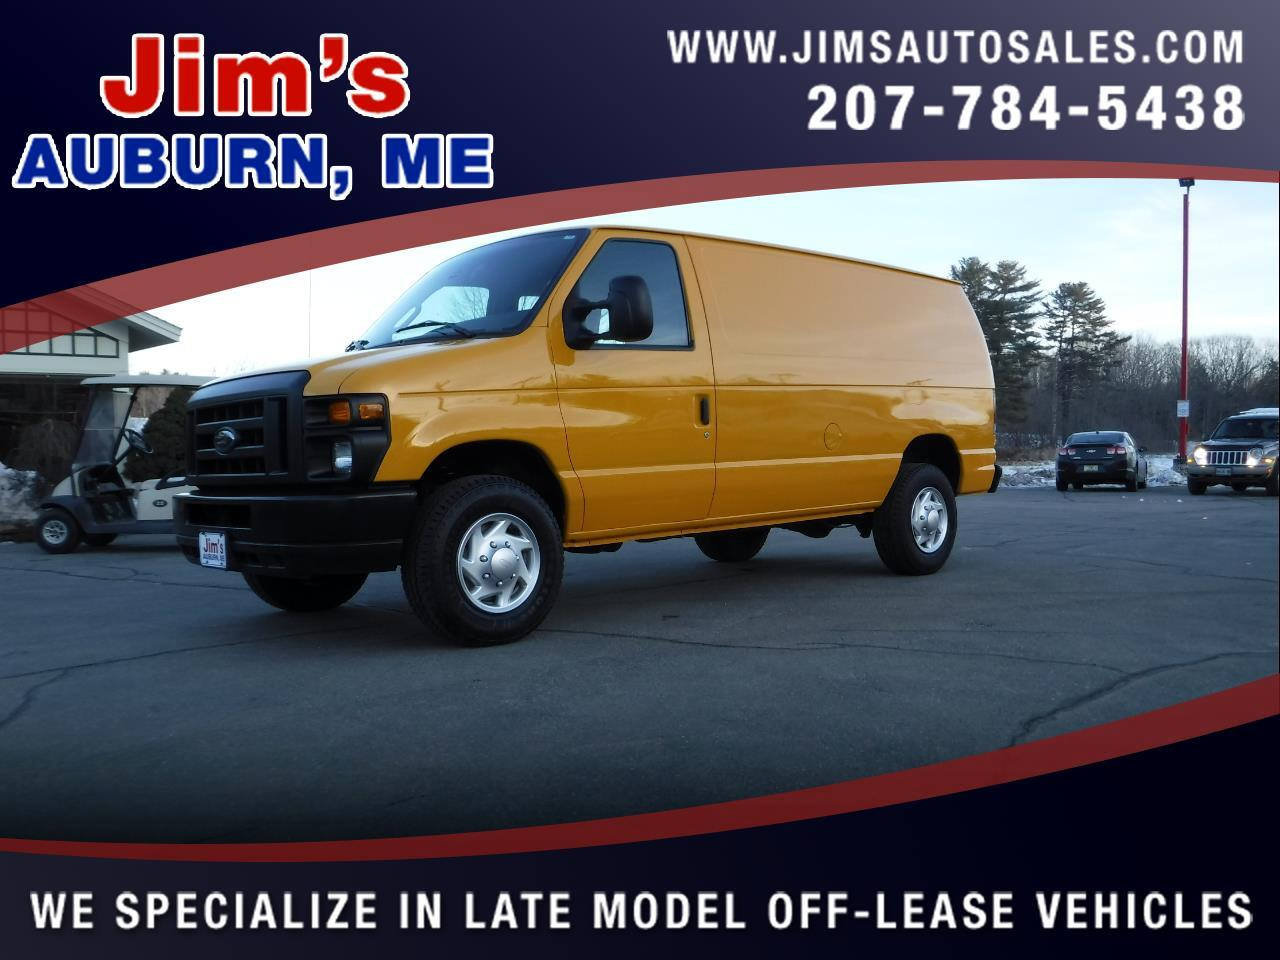 2011 Ford Econoline Cargo Van E-350 Super Duty Commercial